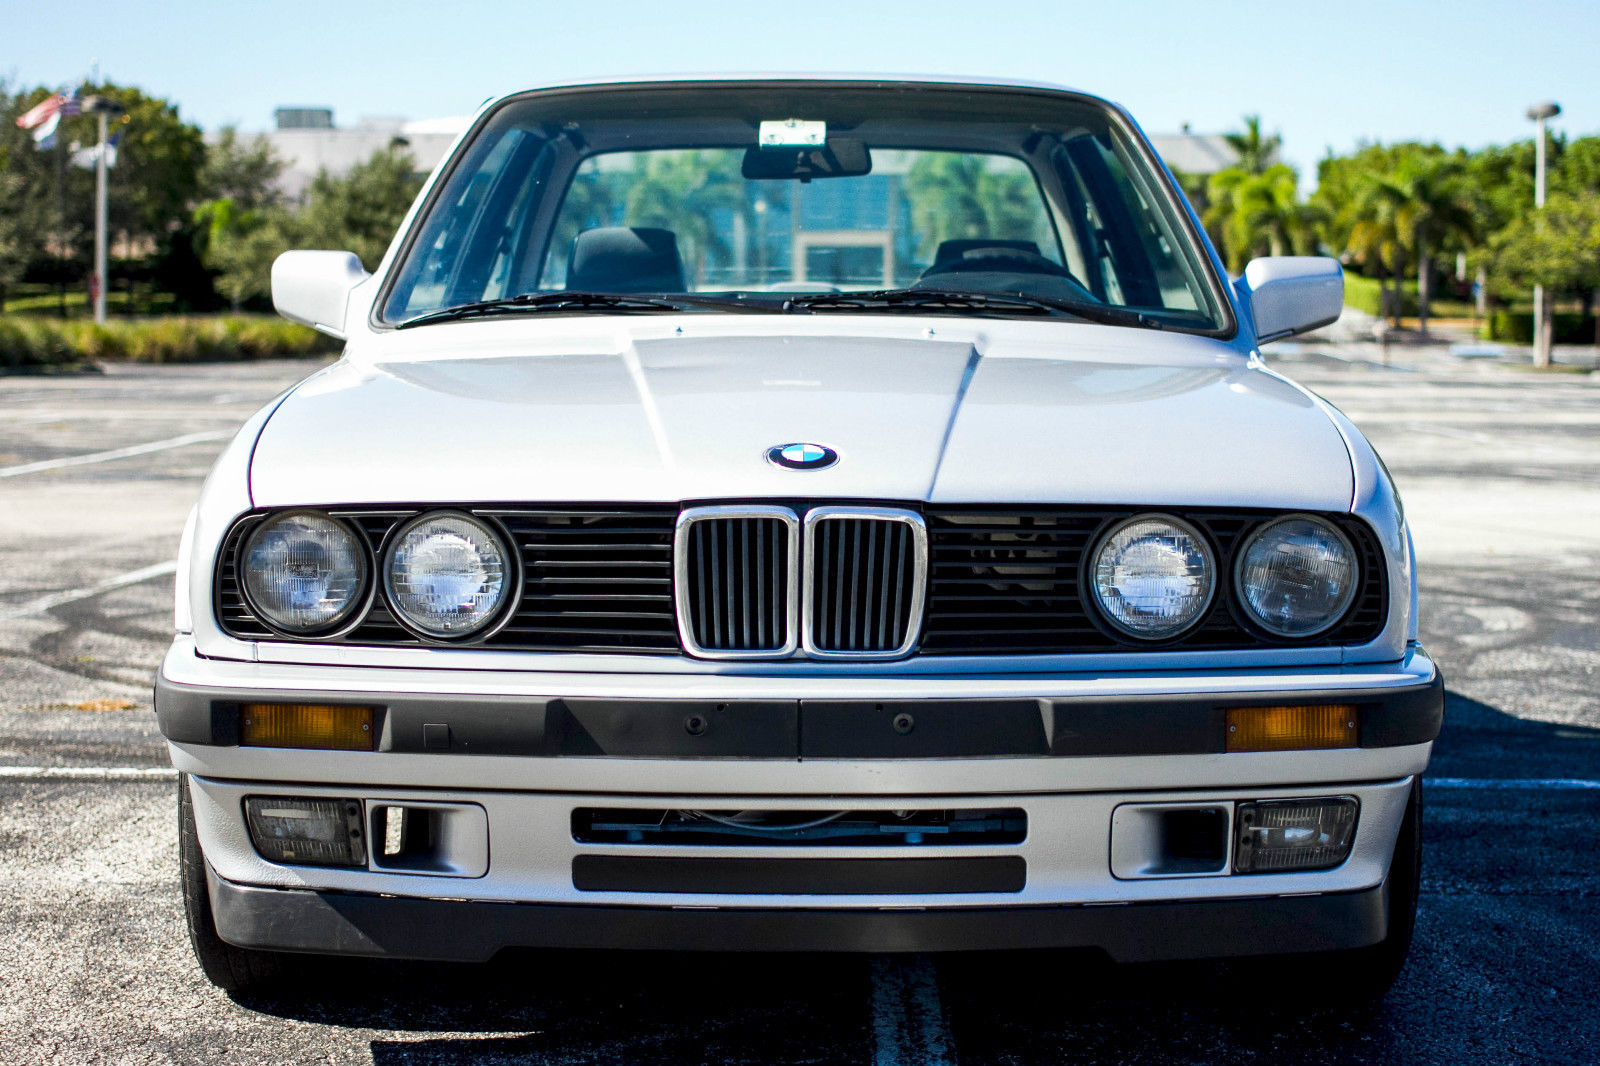 1991 bmw 318is e30 classic bmw 3 series 1991 for sale. Black Bedroom Furniture Sets. Home Design Ideas